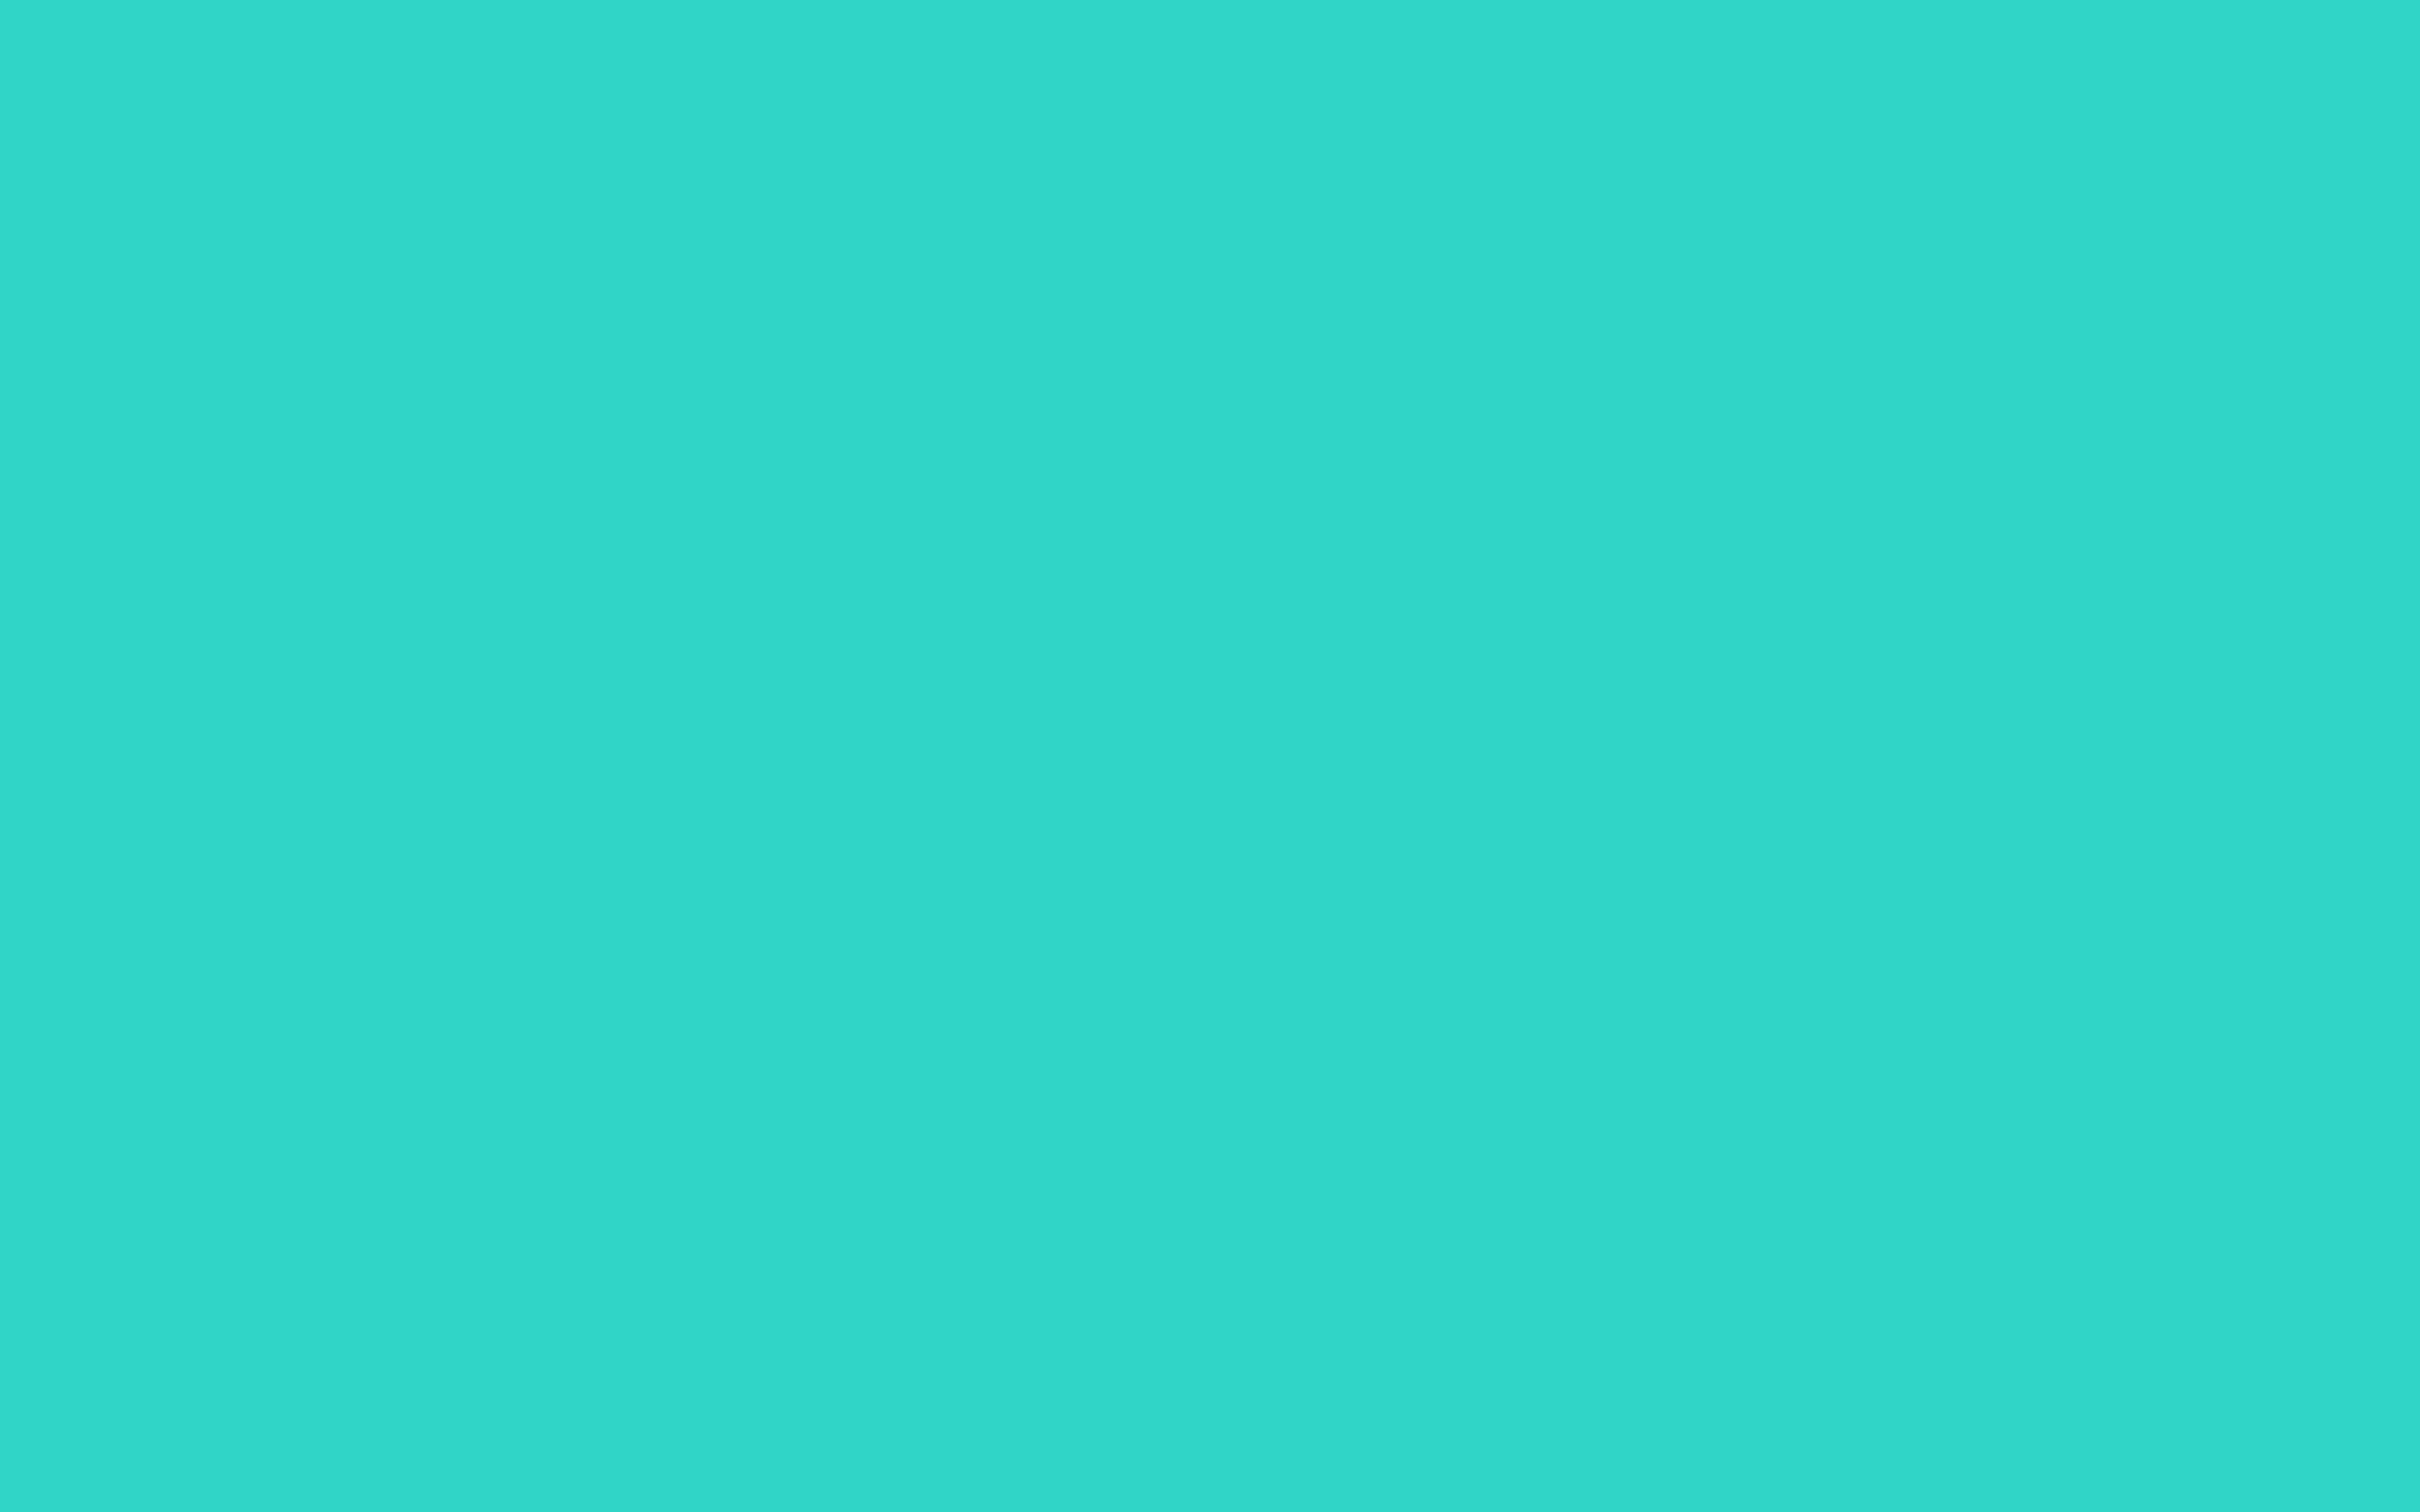 2880x1800 Turquoise Solid Color Background